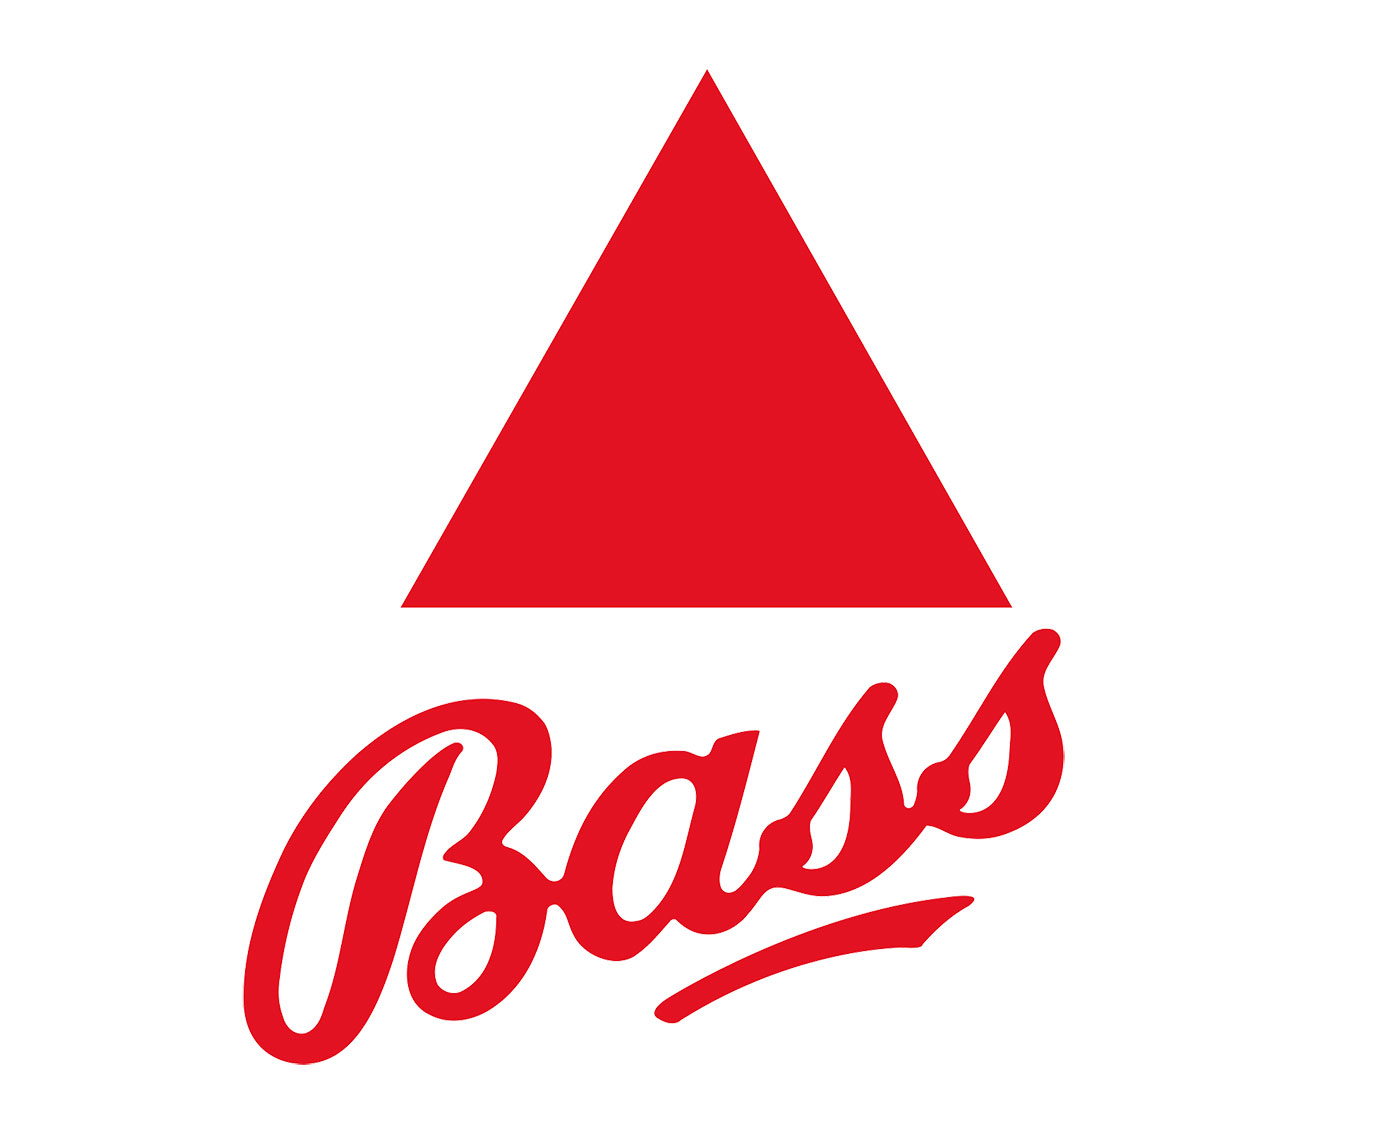 Bass triangle logo